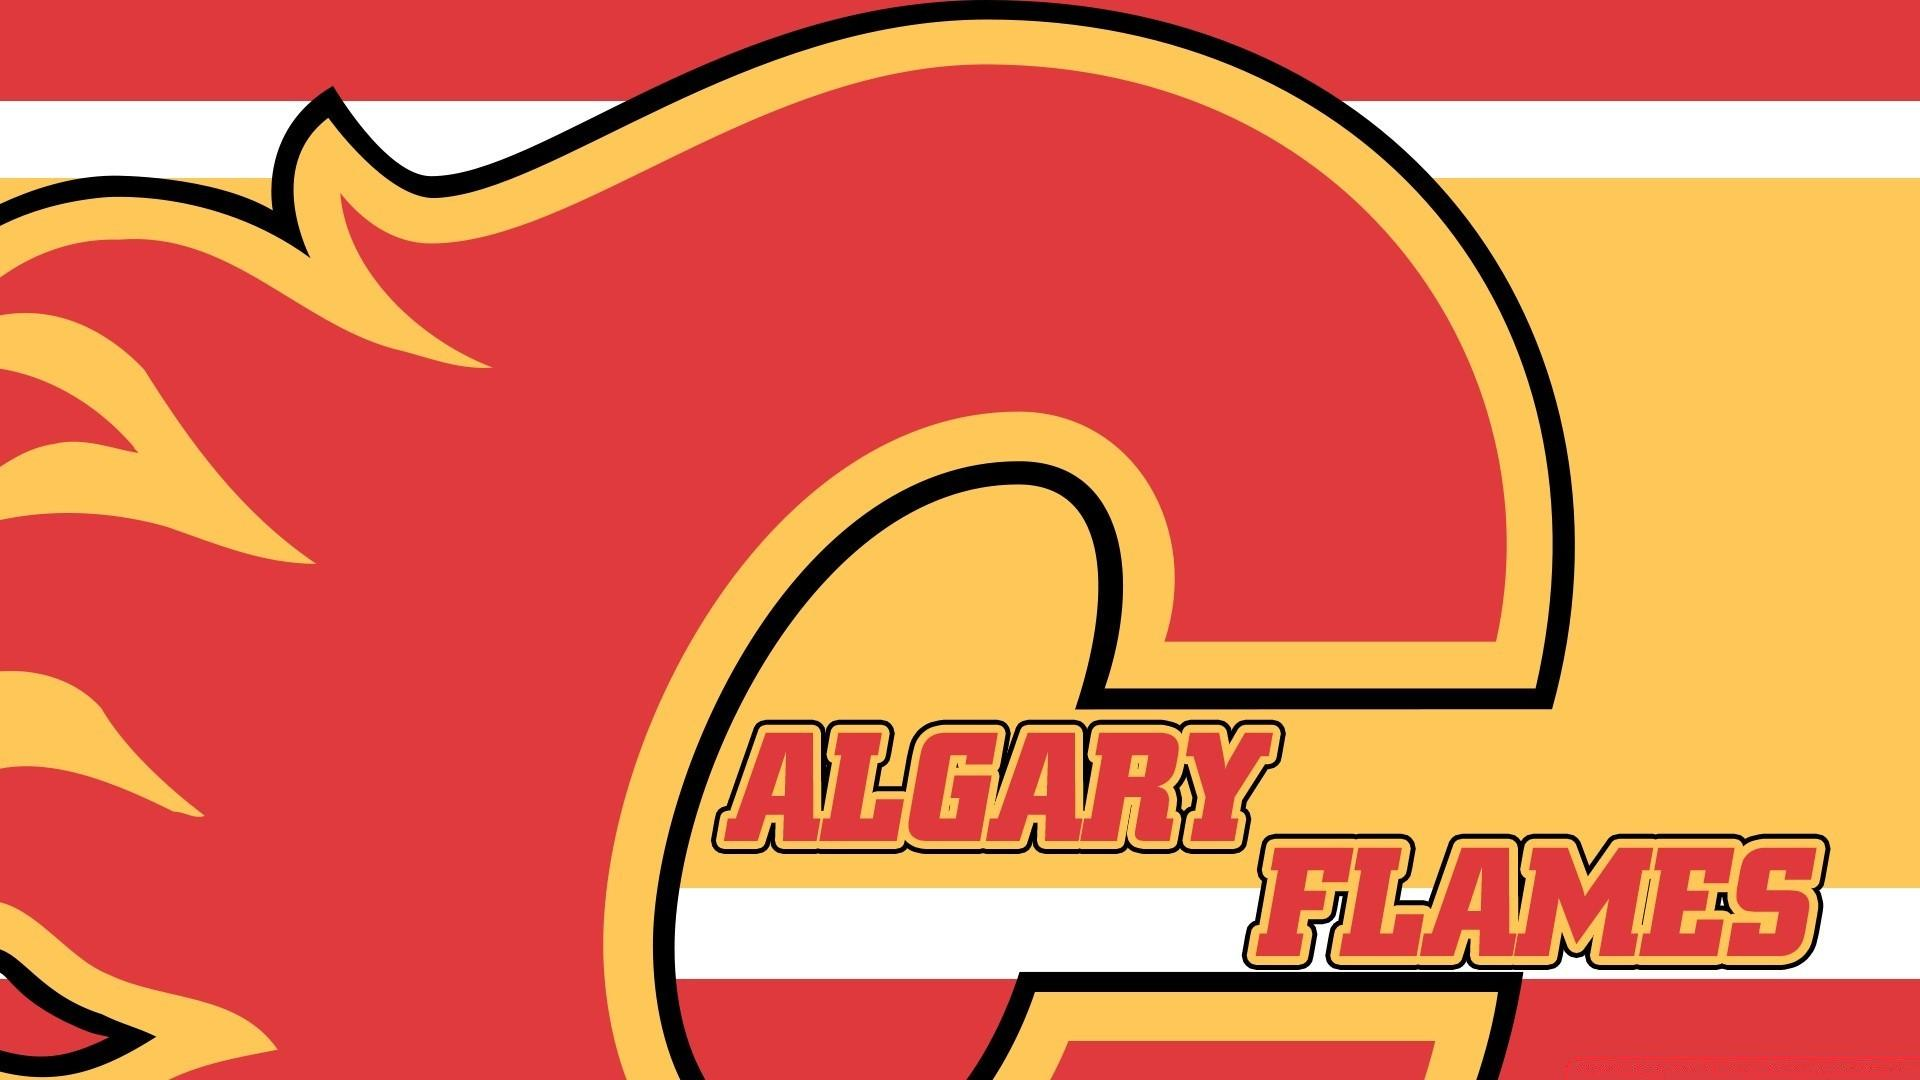 Calgary Flames. iPhone wallpapers for free